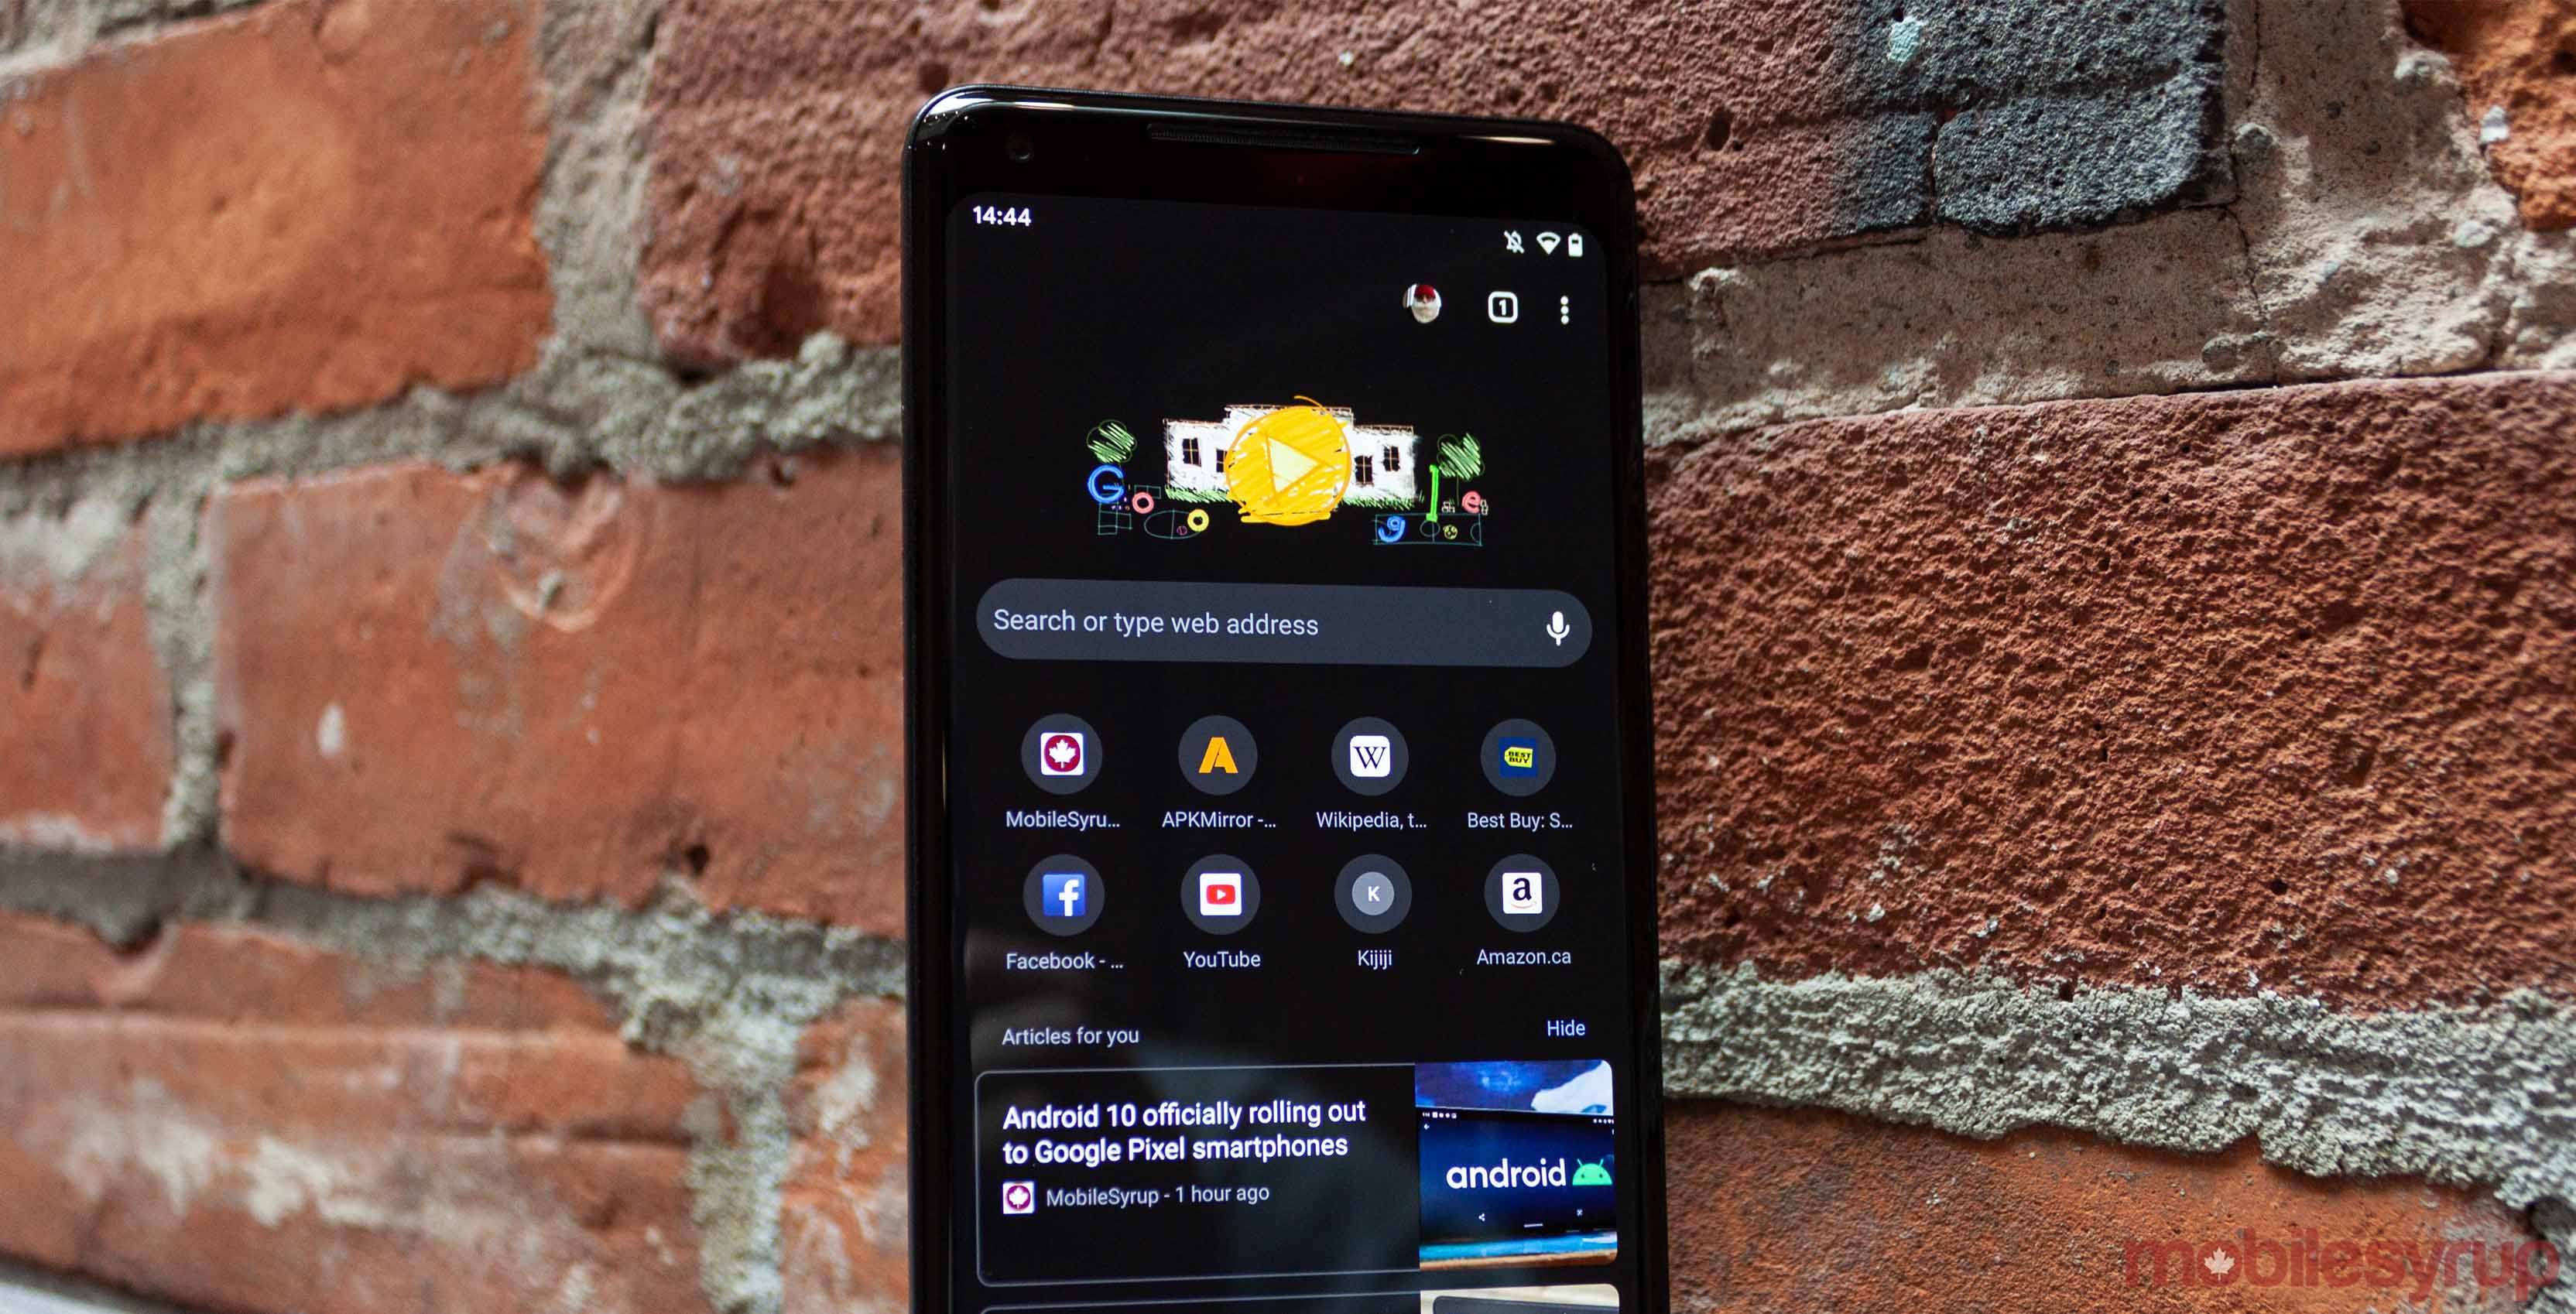 Dark Theme is now available in Google Chrome with Android 10